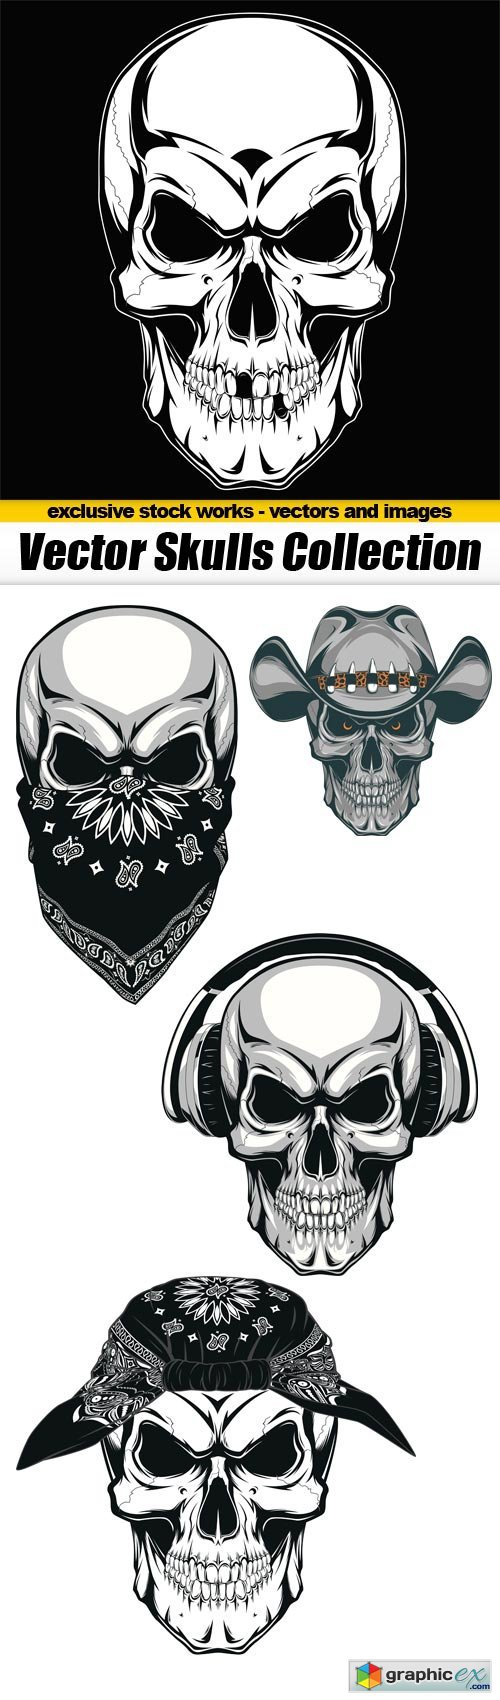 Vector Skulls Collection - 5x EPS